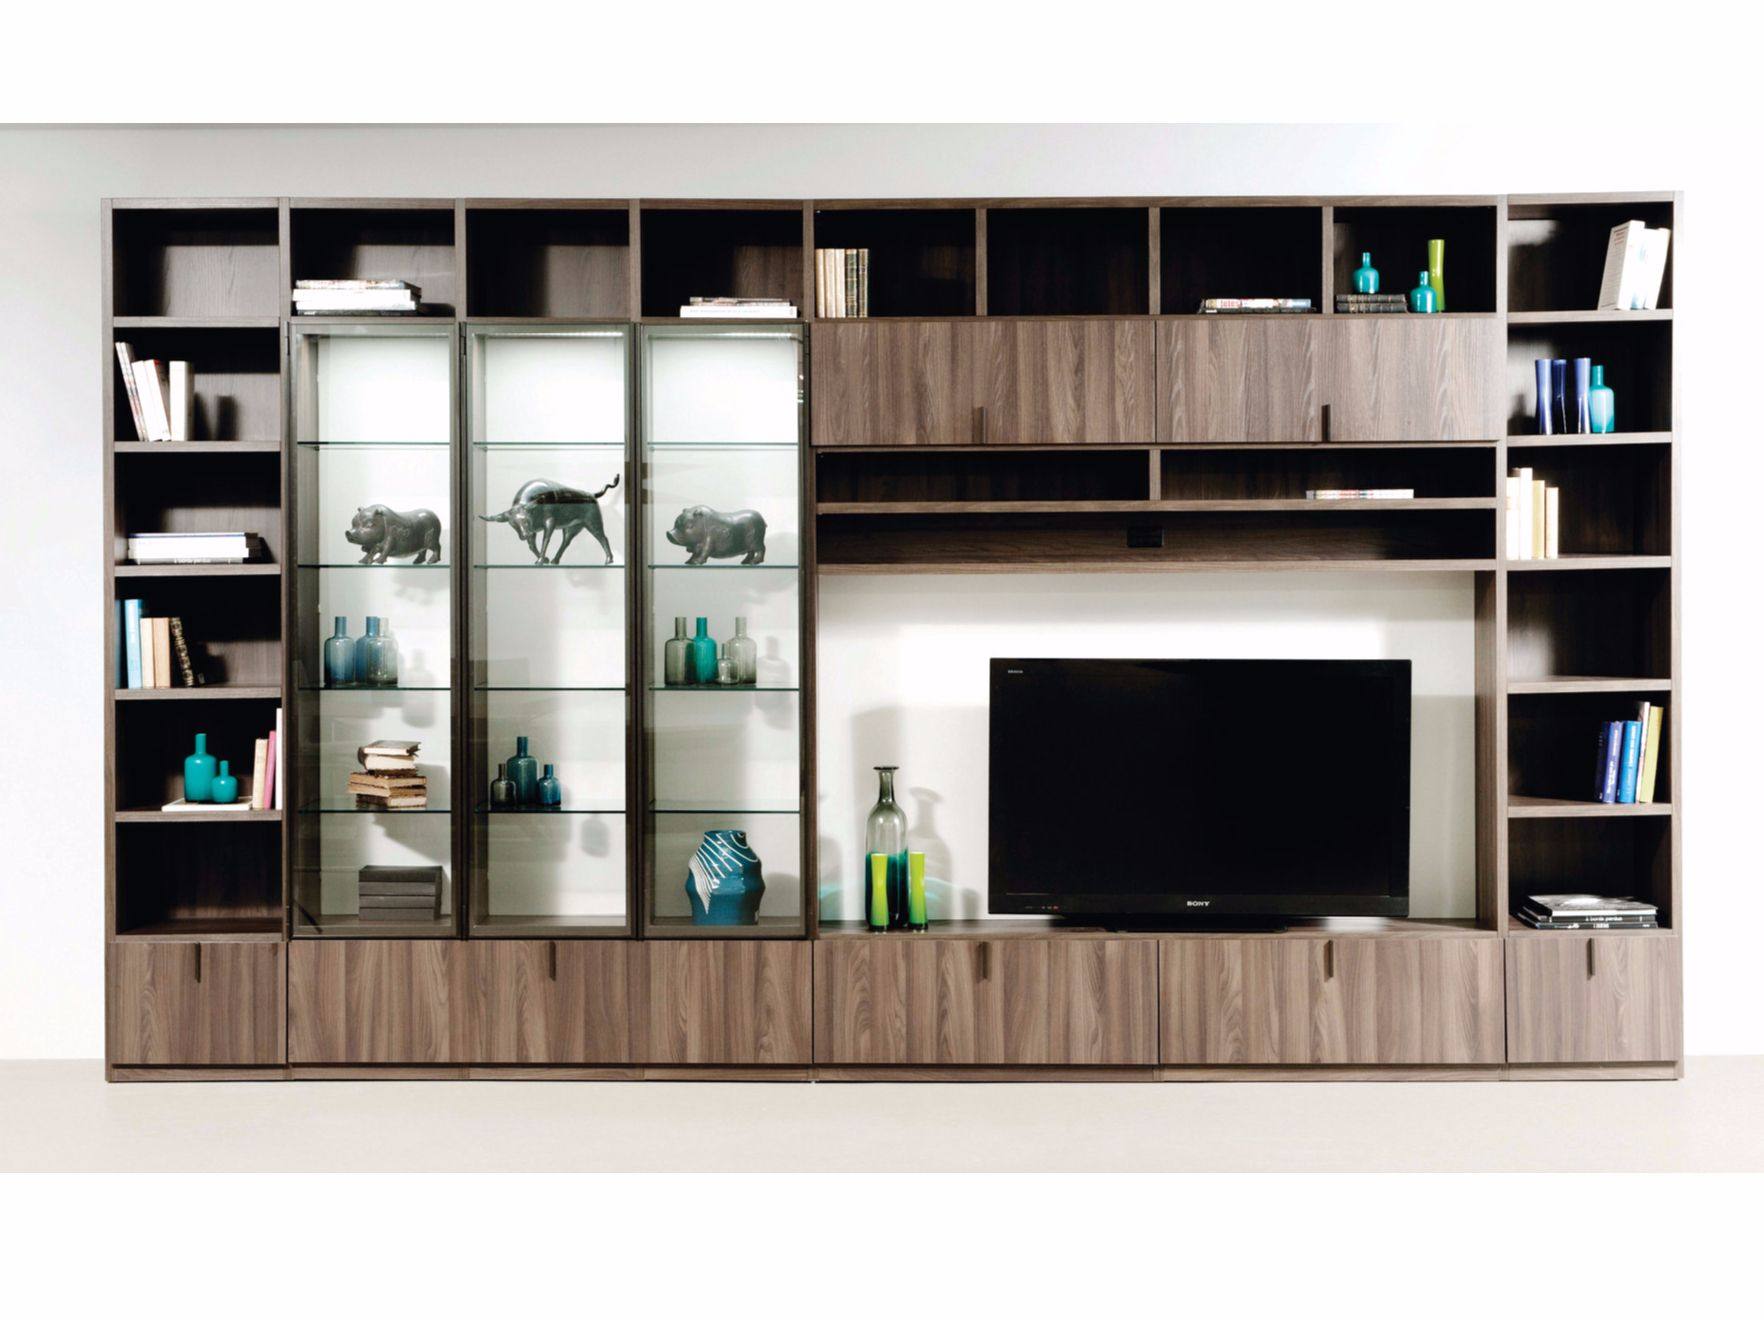 Download The Catalogue And Request Prices Of Intralatina 201510 B By Roche Bobois Sectional Tv Wall System Wall Systems Wall Storage Systems Tv Wall